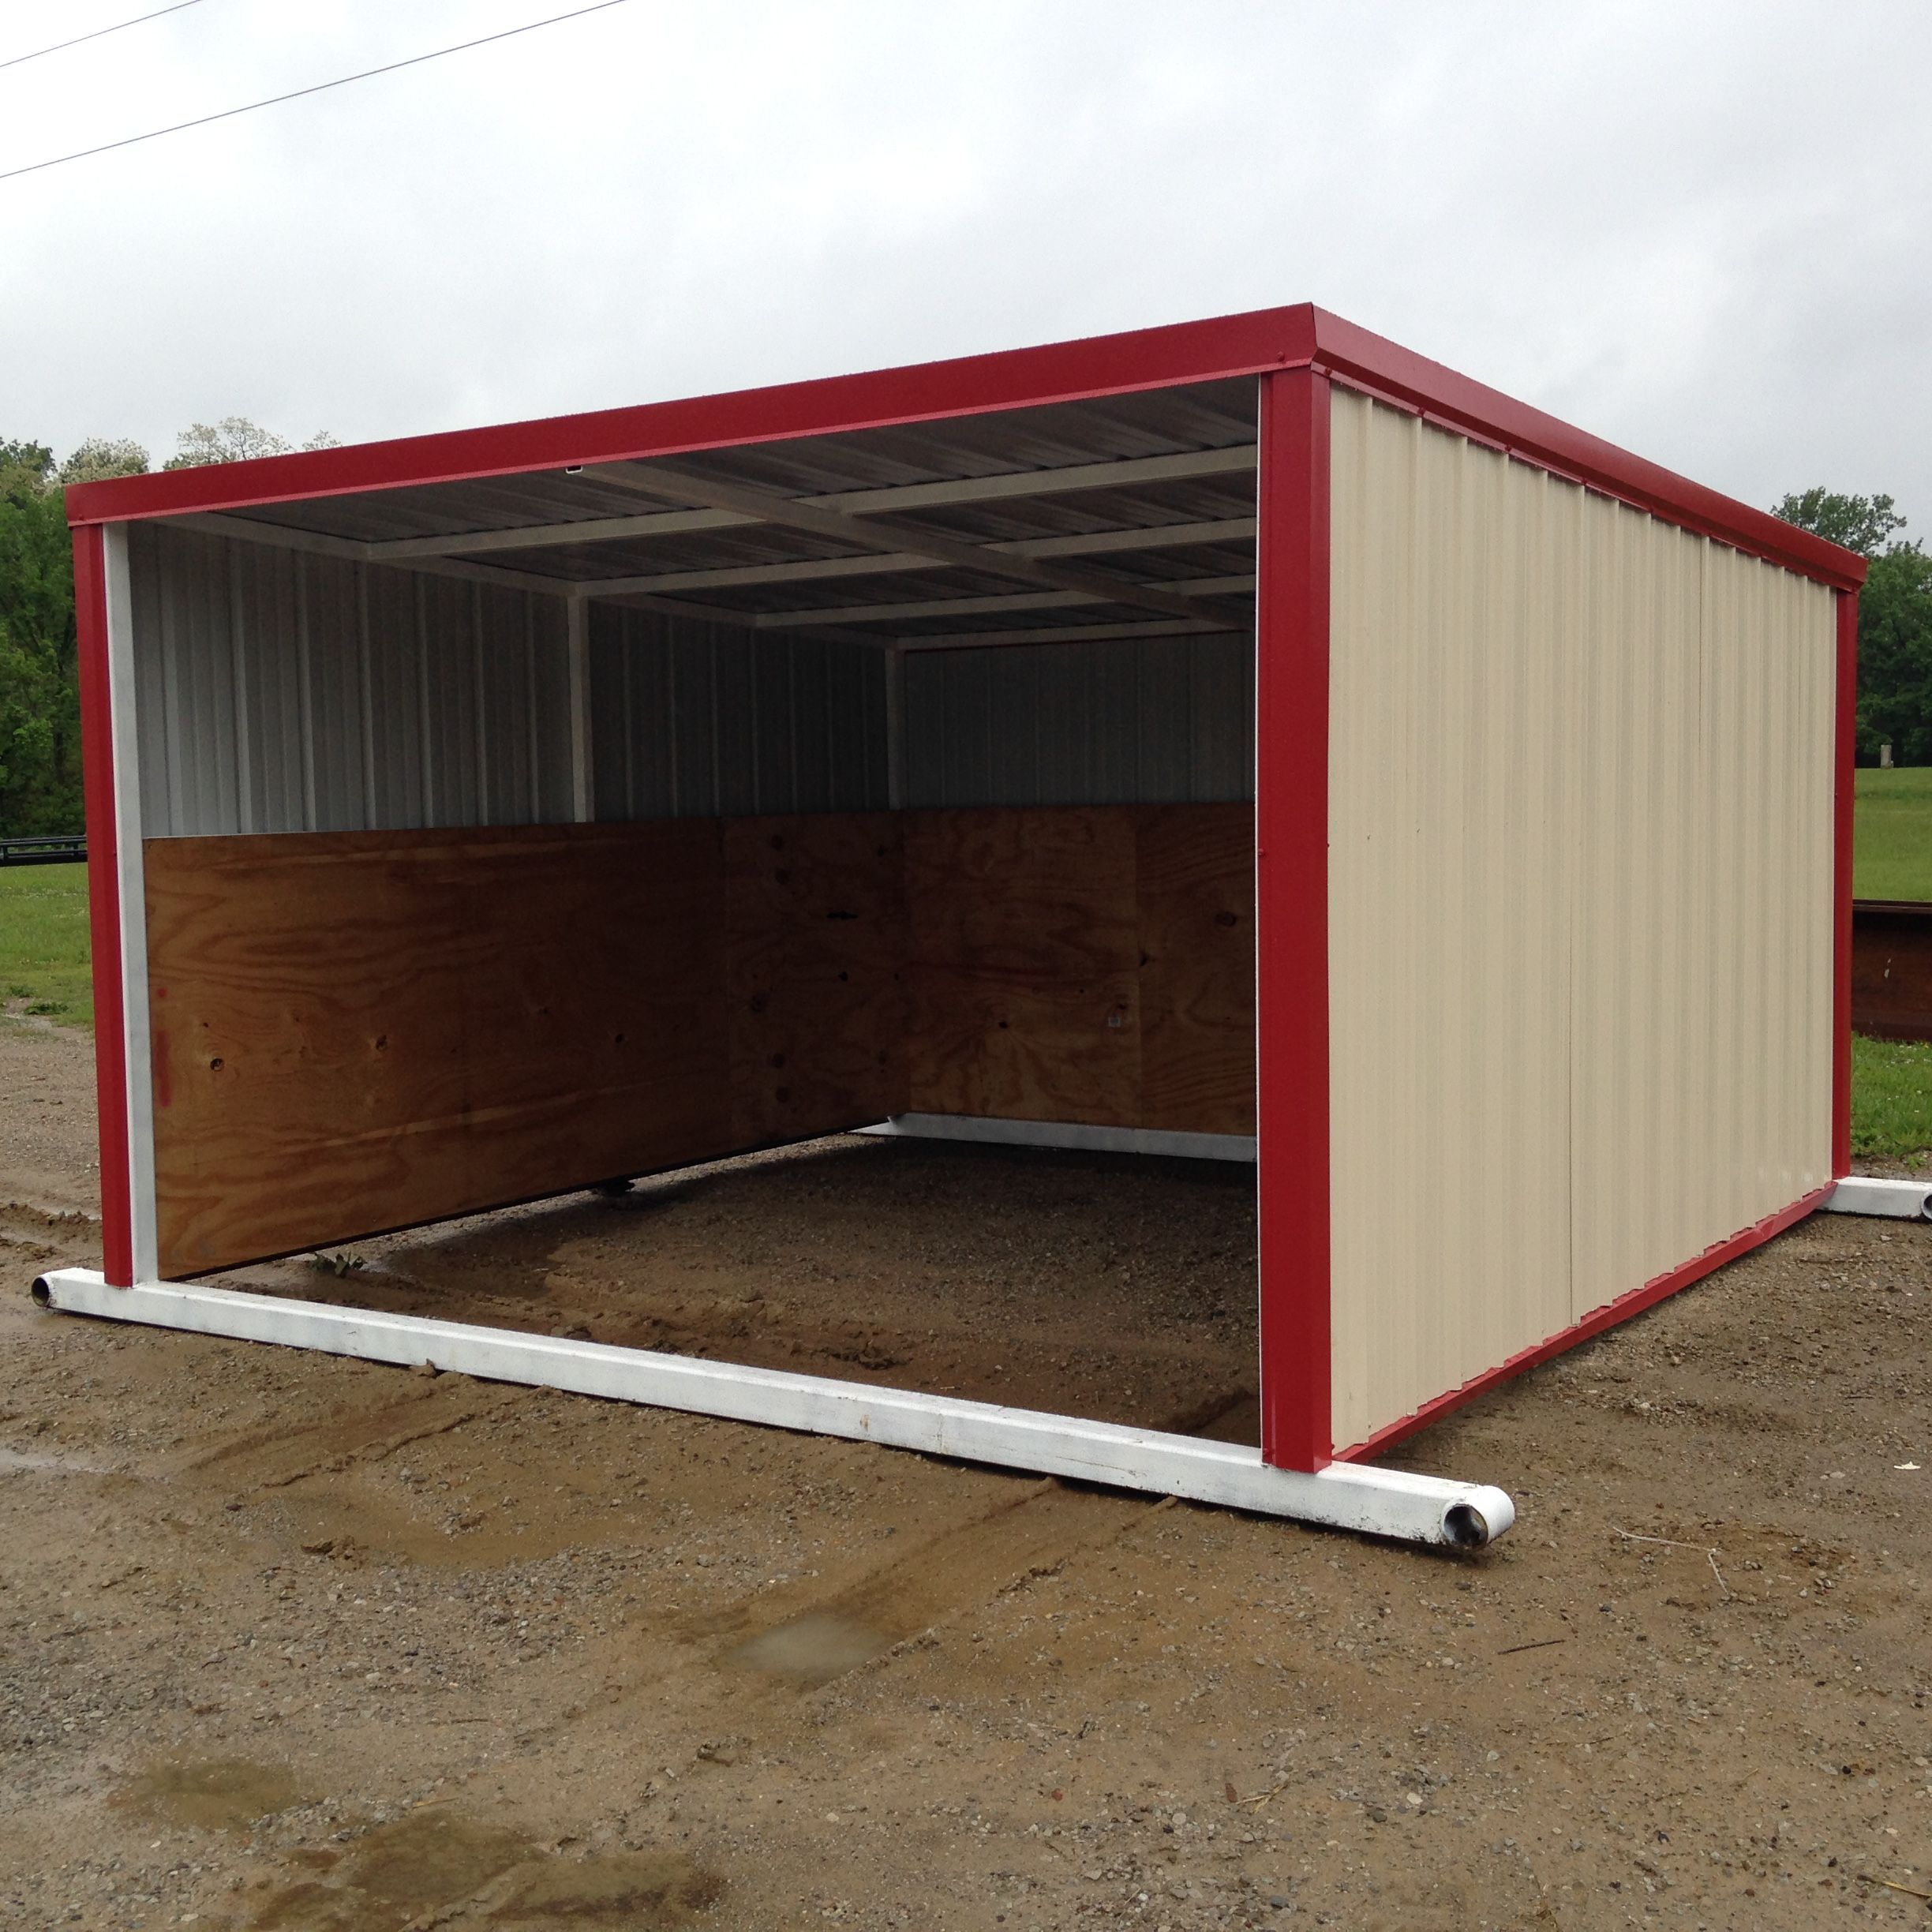 12 X 12 Portable Horse Shed Portable Sheds Horse Shed Shed